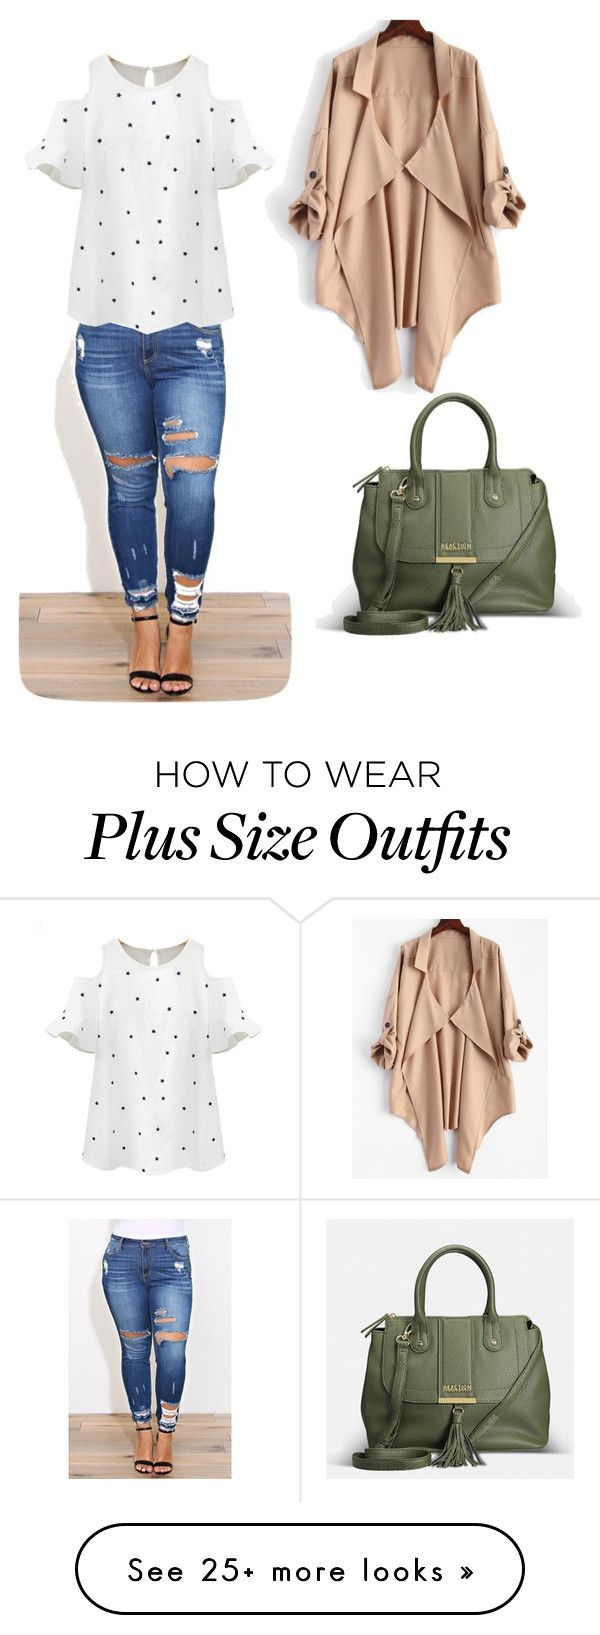 15 ways to wear plus size polka dot outfits without looking frumpy 3 - 15-ways-to-wear-plus-size-polka-dot-outfits-without-looking-frumpy-3